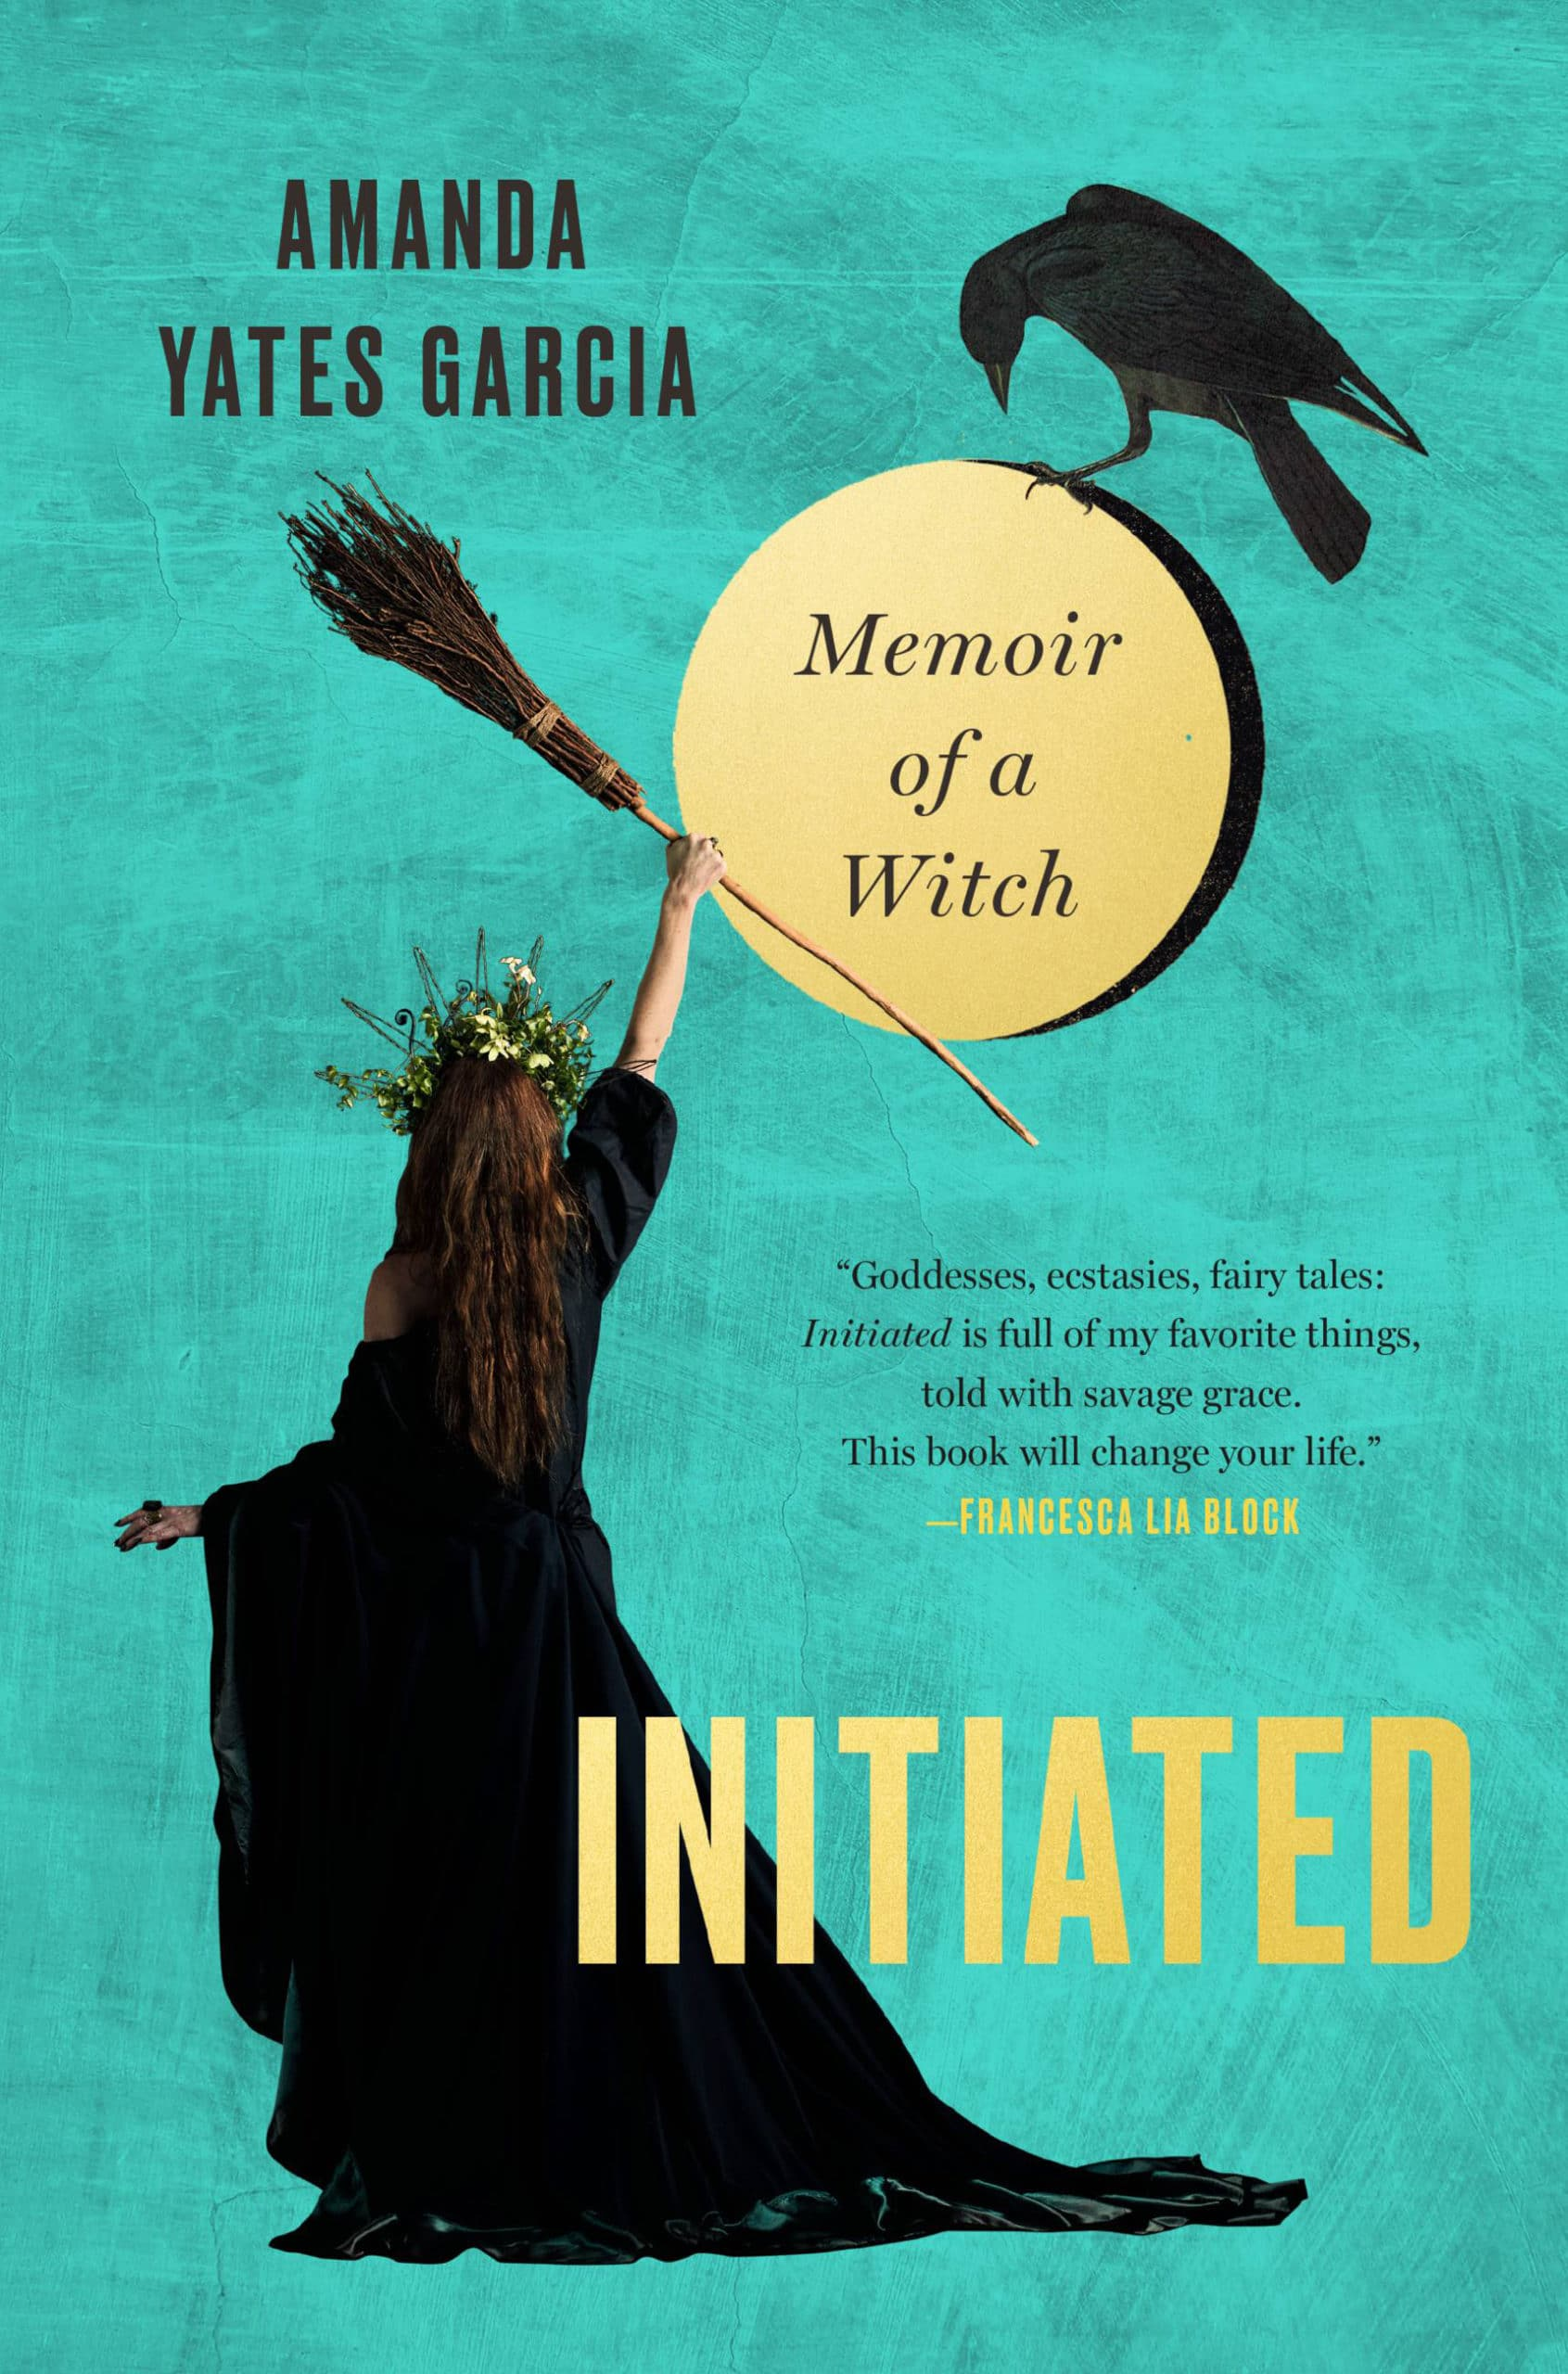 Book Cover of Initiated by Amanda Yates Garcia